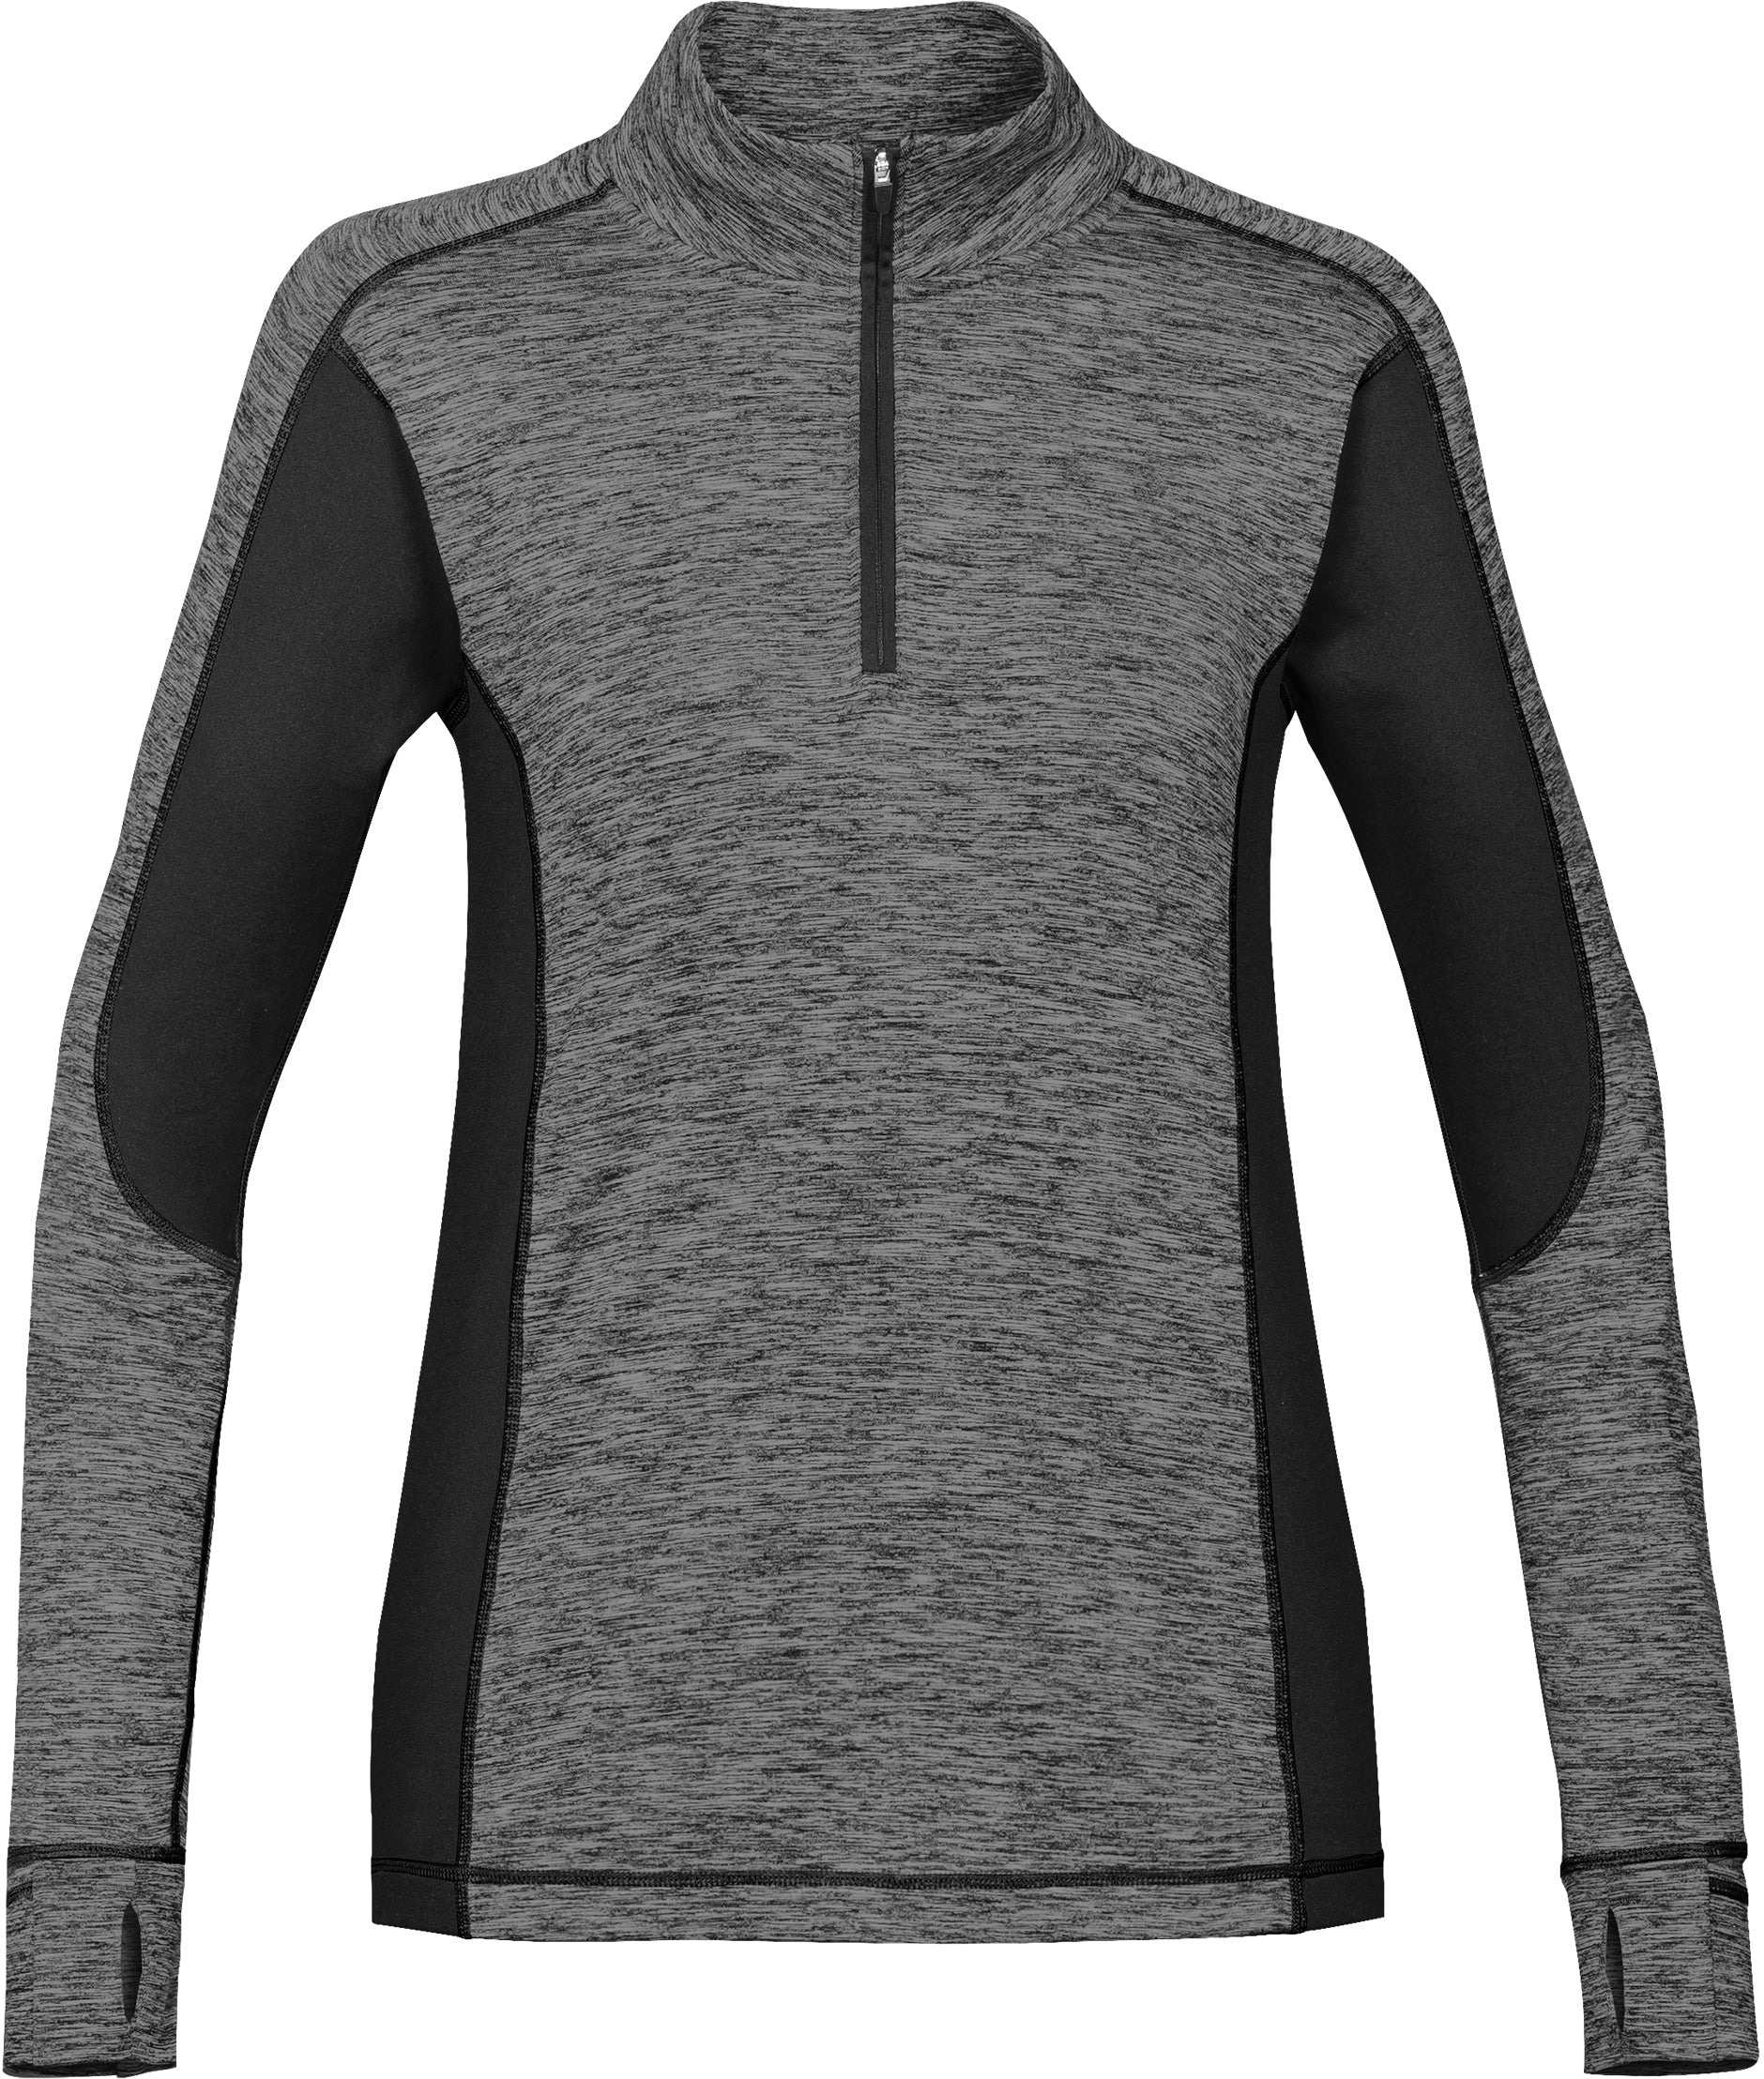 STORMTECH LADIES LOTUS 1/4 ZIP